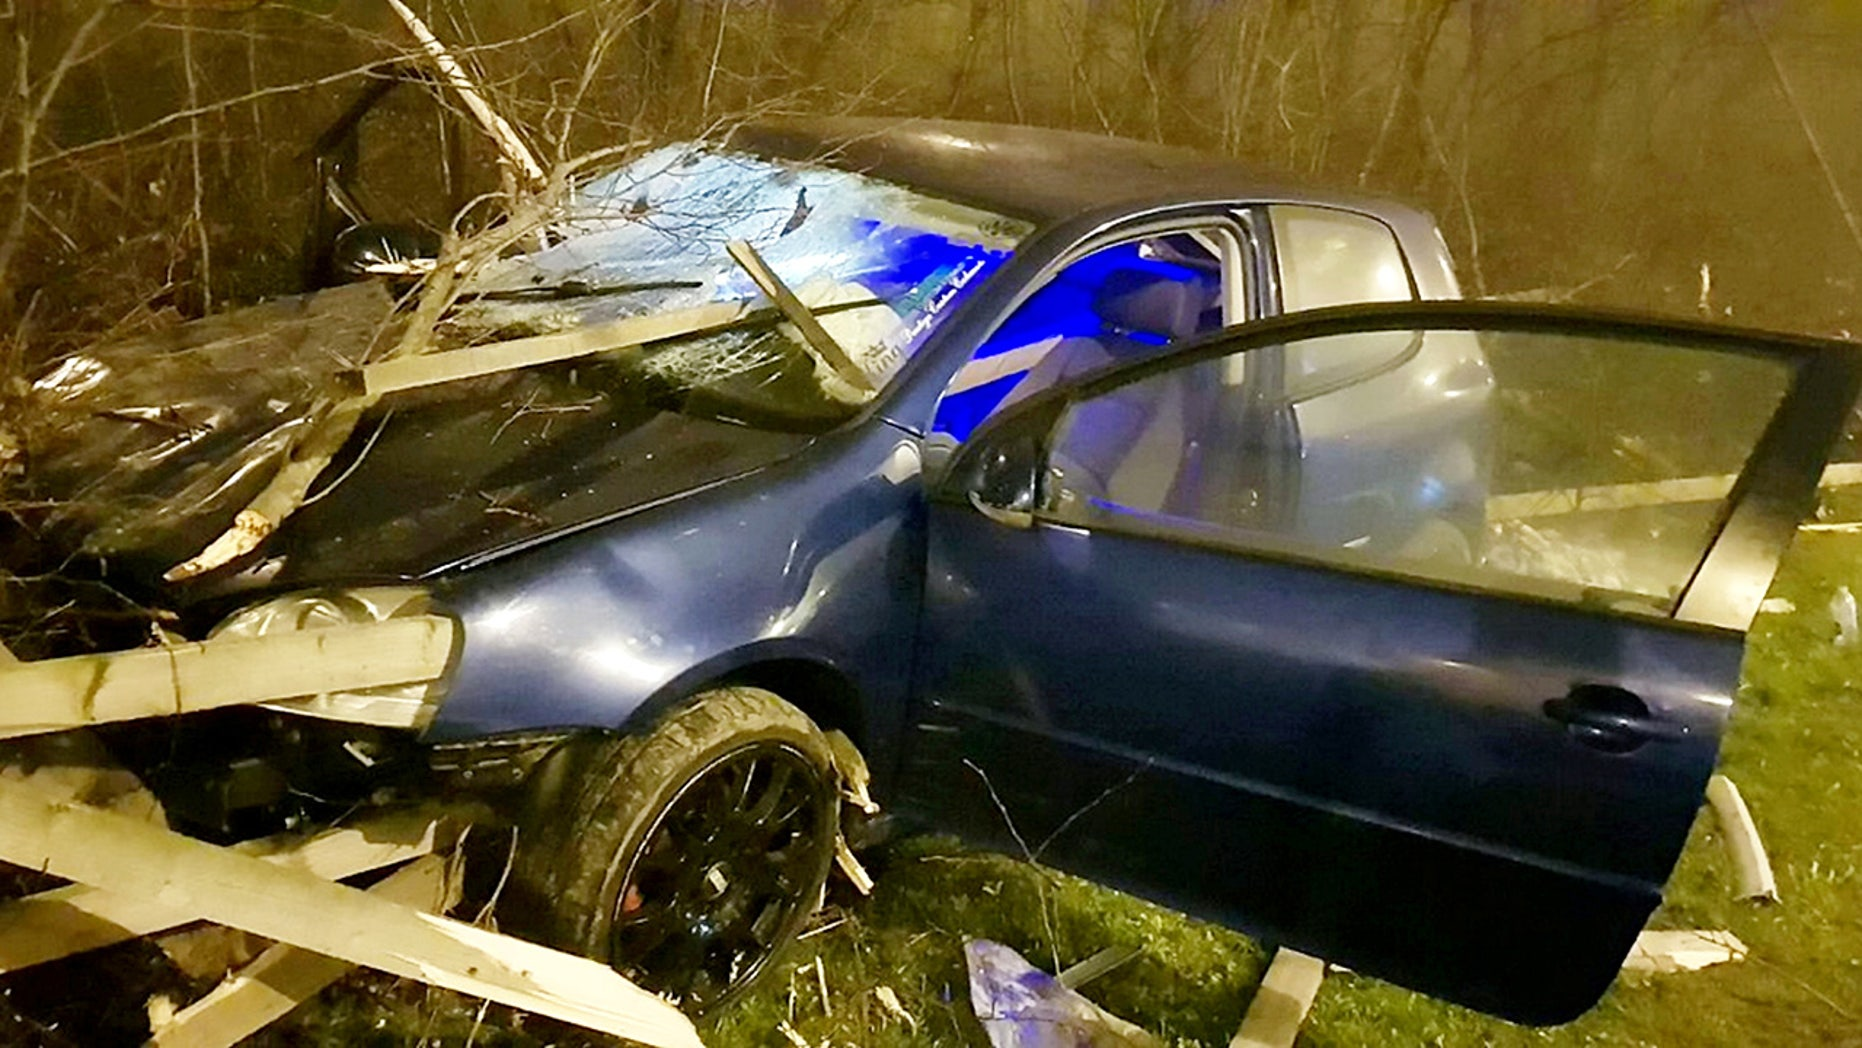 """Four people had an """"unbelievable"""" escape from death after planks of timber skewered the small car they were travelling in when it collided with a fence yesterday (Sunday). See ROSS PARRY story RPYCRASH.  Traffic police in West Yorkshire posted the shocking pictures of the wrecked vehicle on Twitter showing the damage of the car crash which happened in the Stourton area of Leeds.  The officers said on Twitter: """"Four of the luckiest people our officers have ever seen following an RTC. """"Unbelievable how this did not result in multiple fatalities.  Thankfully luck was on everybody's side this evening."""""""